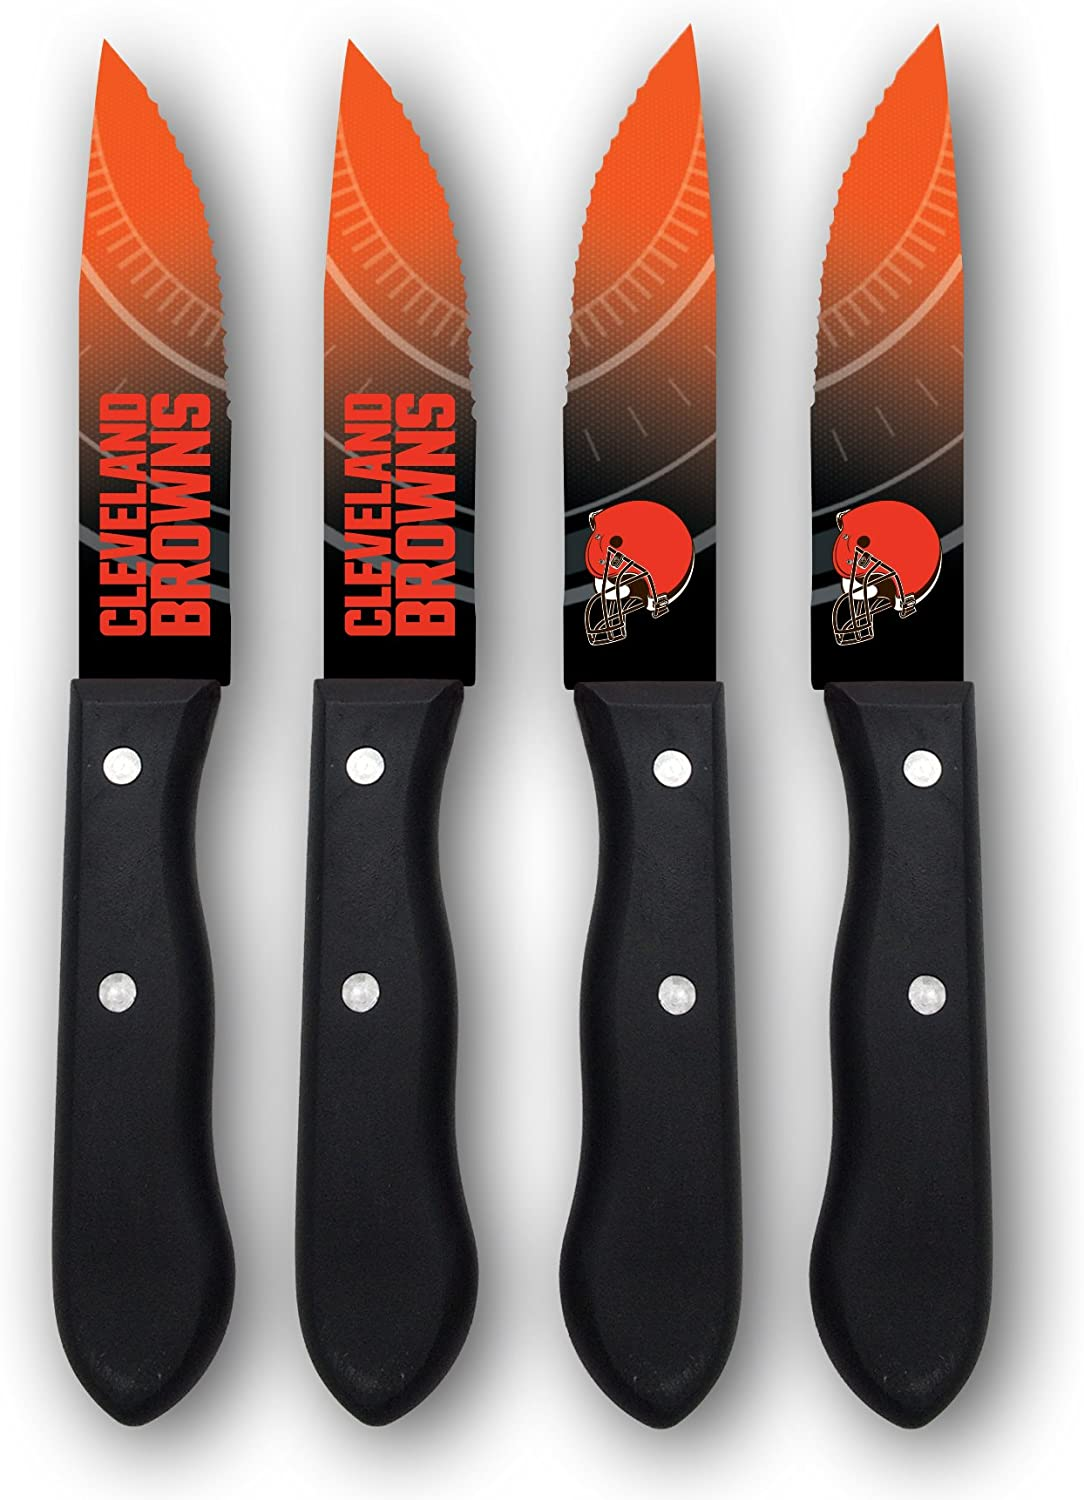 NFL Steak Knives - Set of 4 Stainless Steel Serrated Blade Kitchen Steak Knives - Durable & Dishwasher Safe - Scratch Resistant & Rust Proof - Ideal Gift for the Loyal Sports Fan